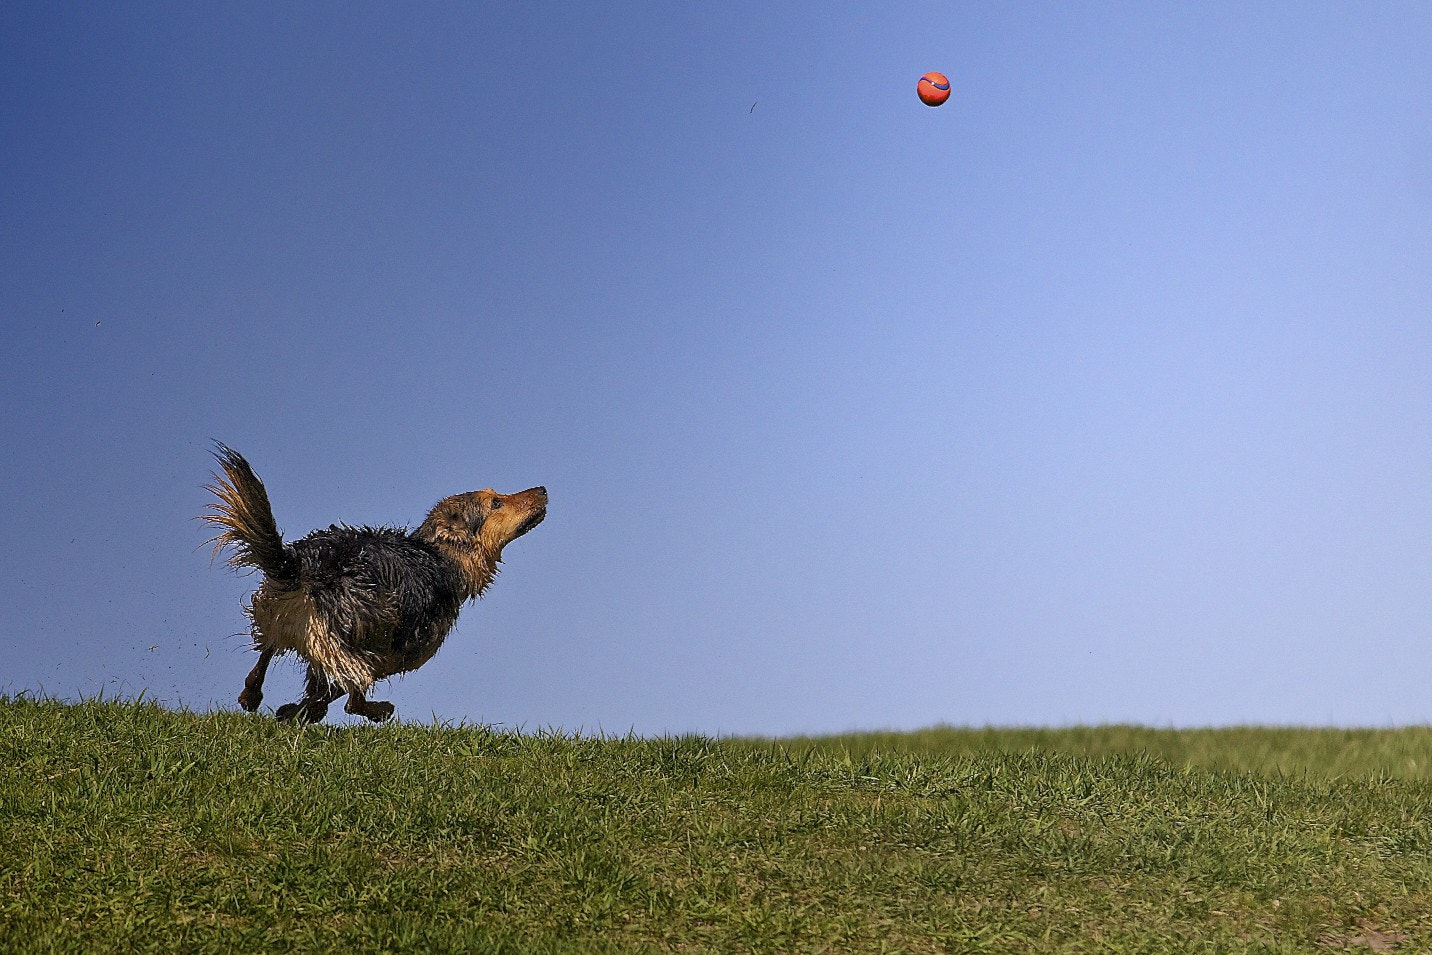 Photograph Sookie in the sky by Florian Rudolph on 500px